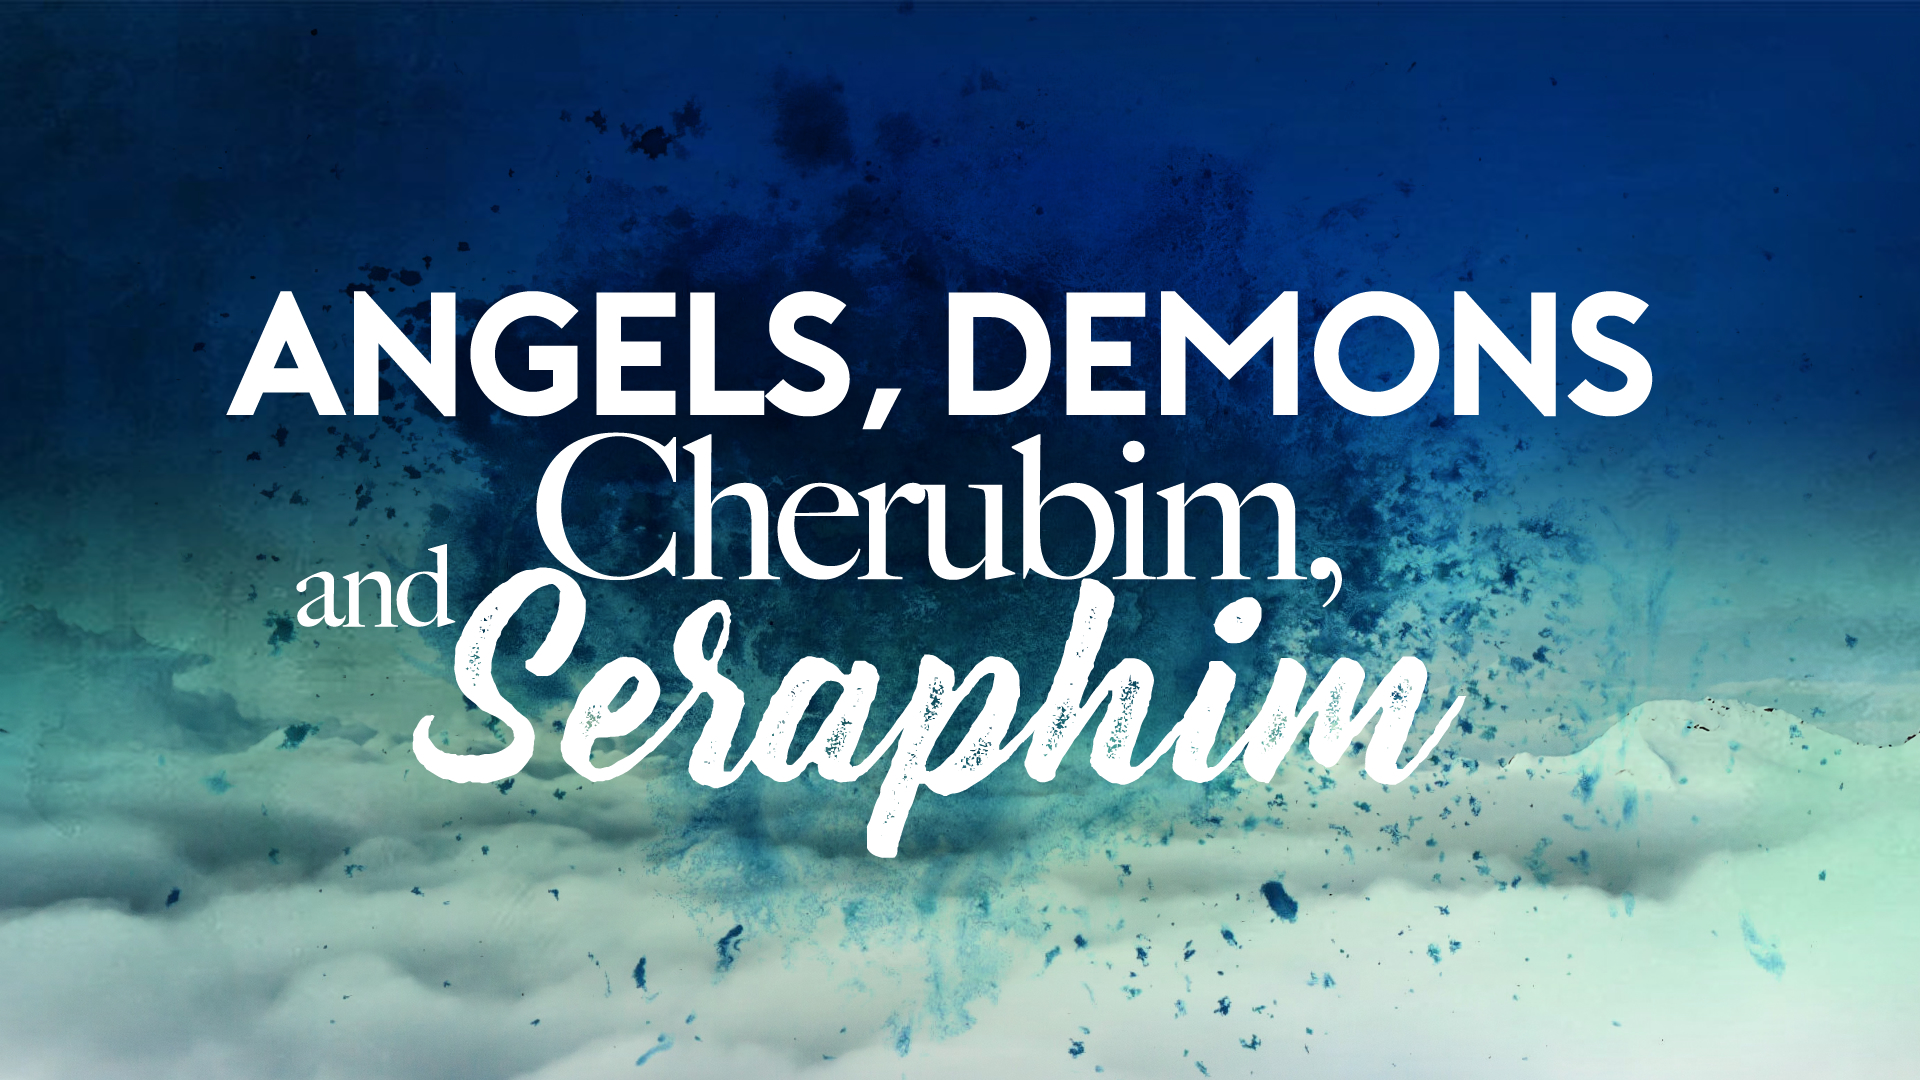 Angels, Demons, Cheribim, and Seraphim.jpg